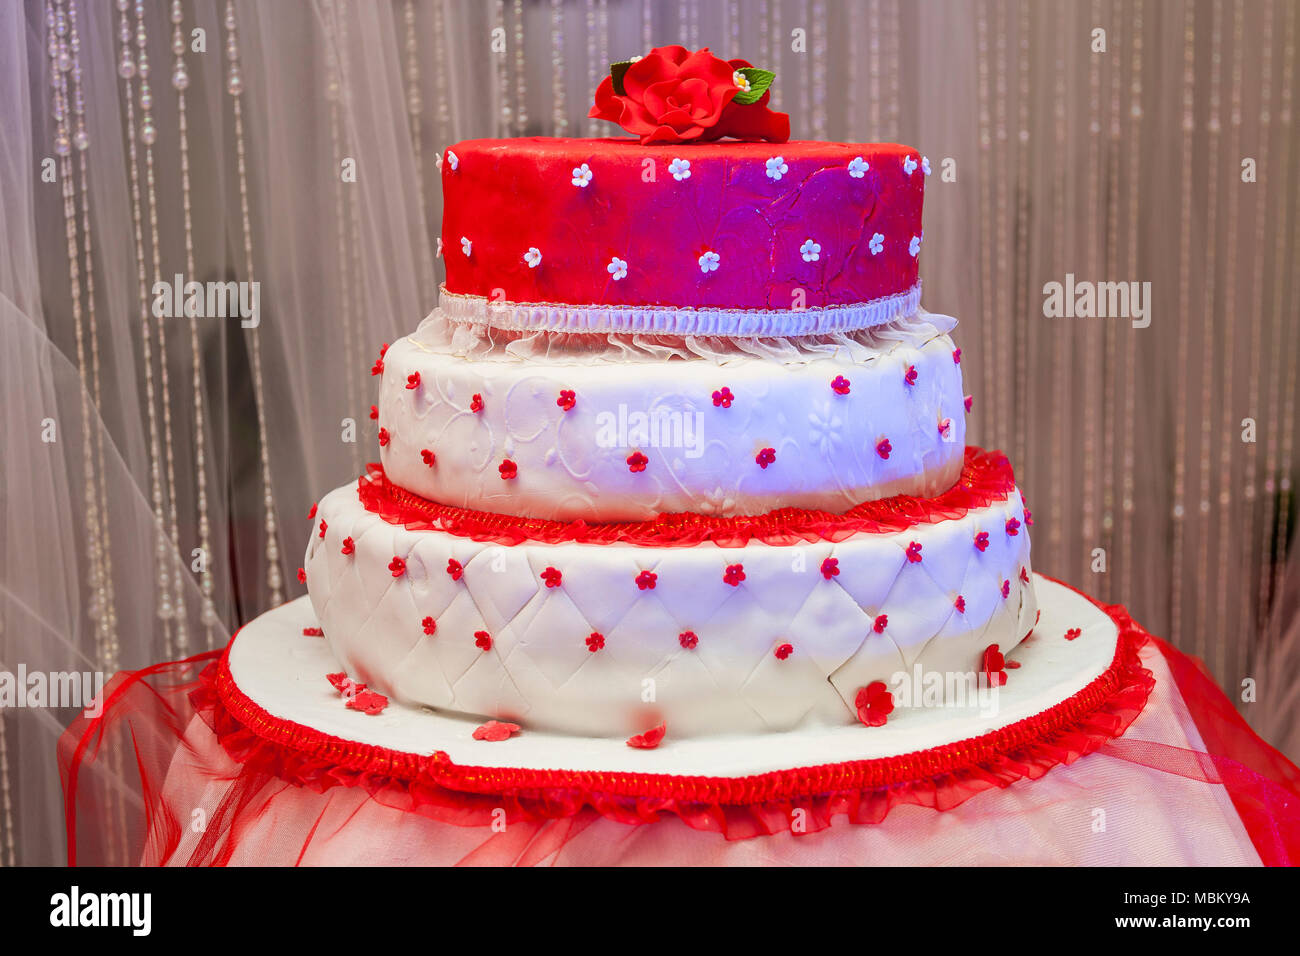 Red and white wedding cake stock photo 179303414 alamy red and white wedding cake junglespirit Gallery